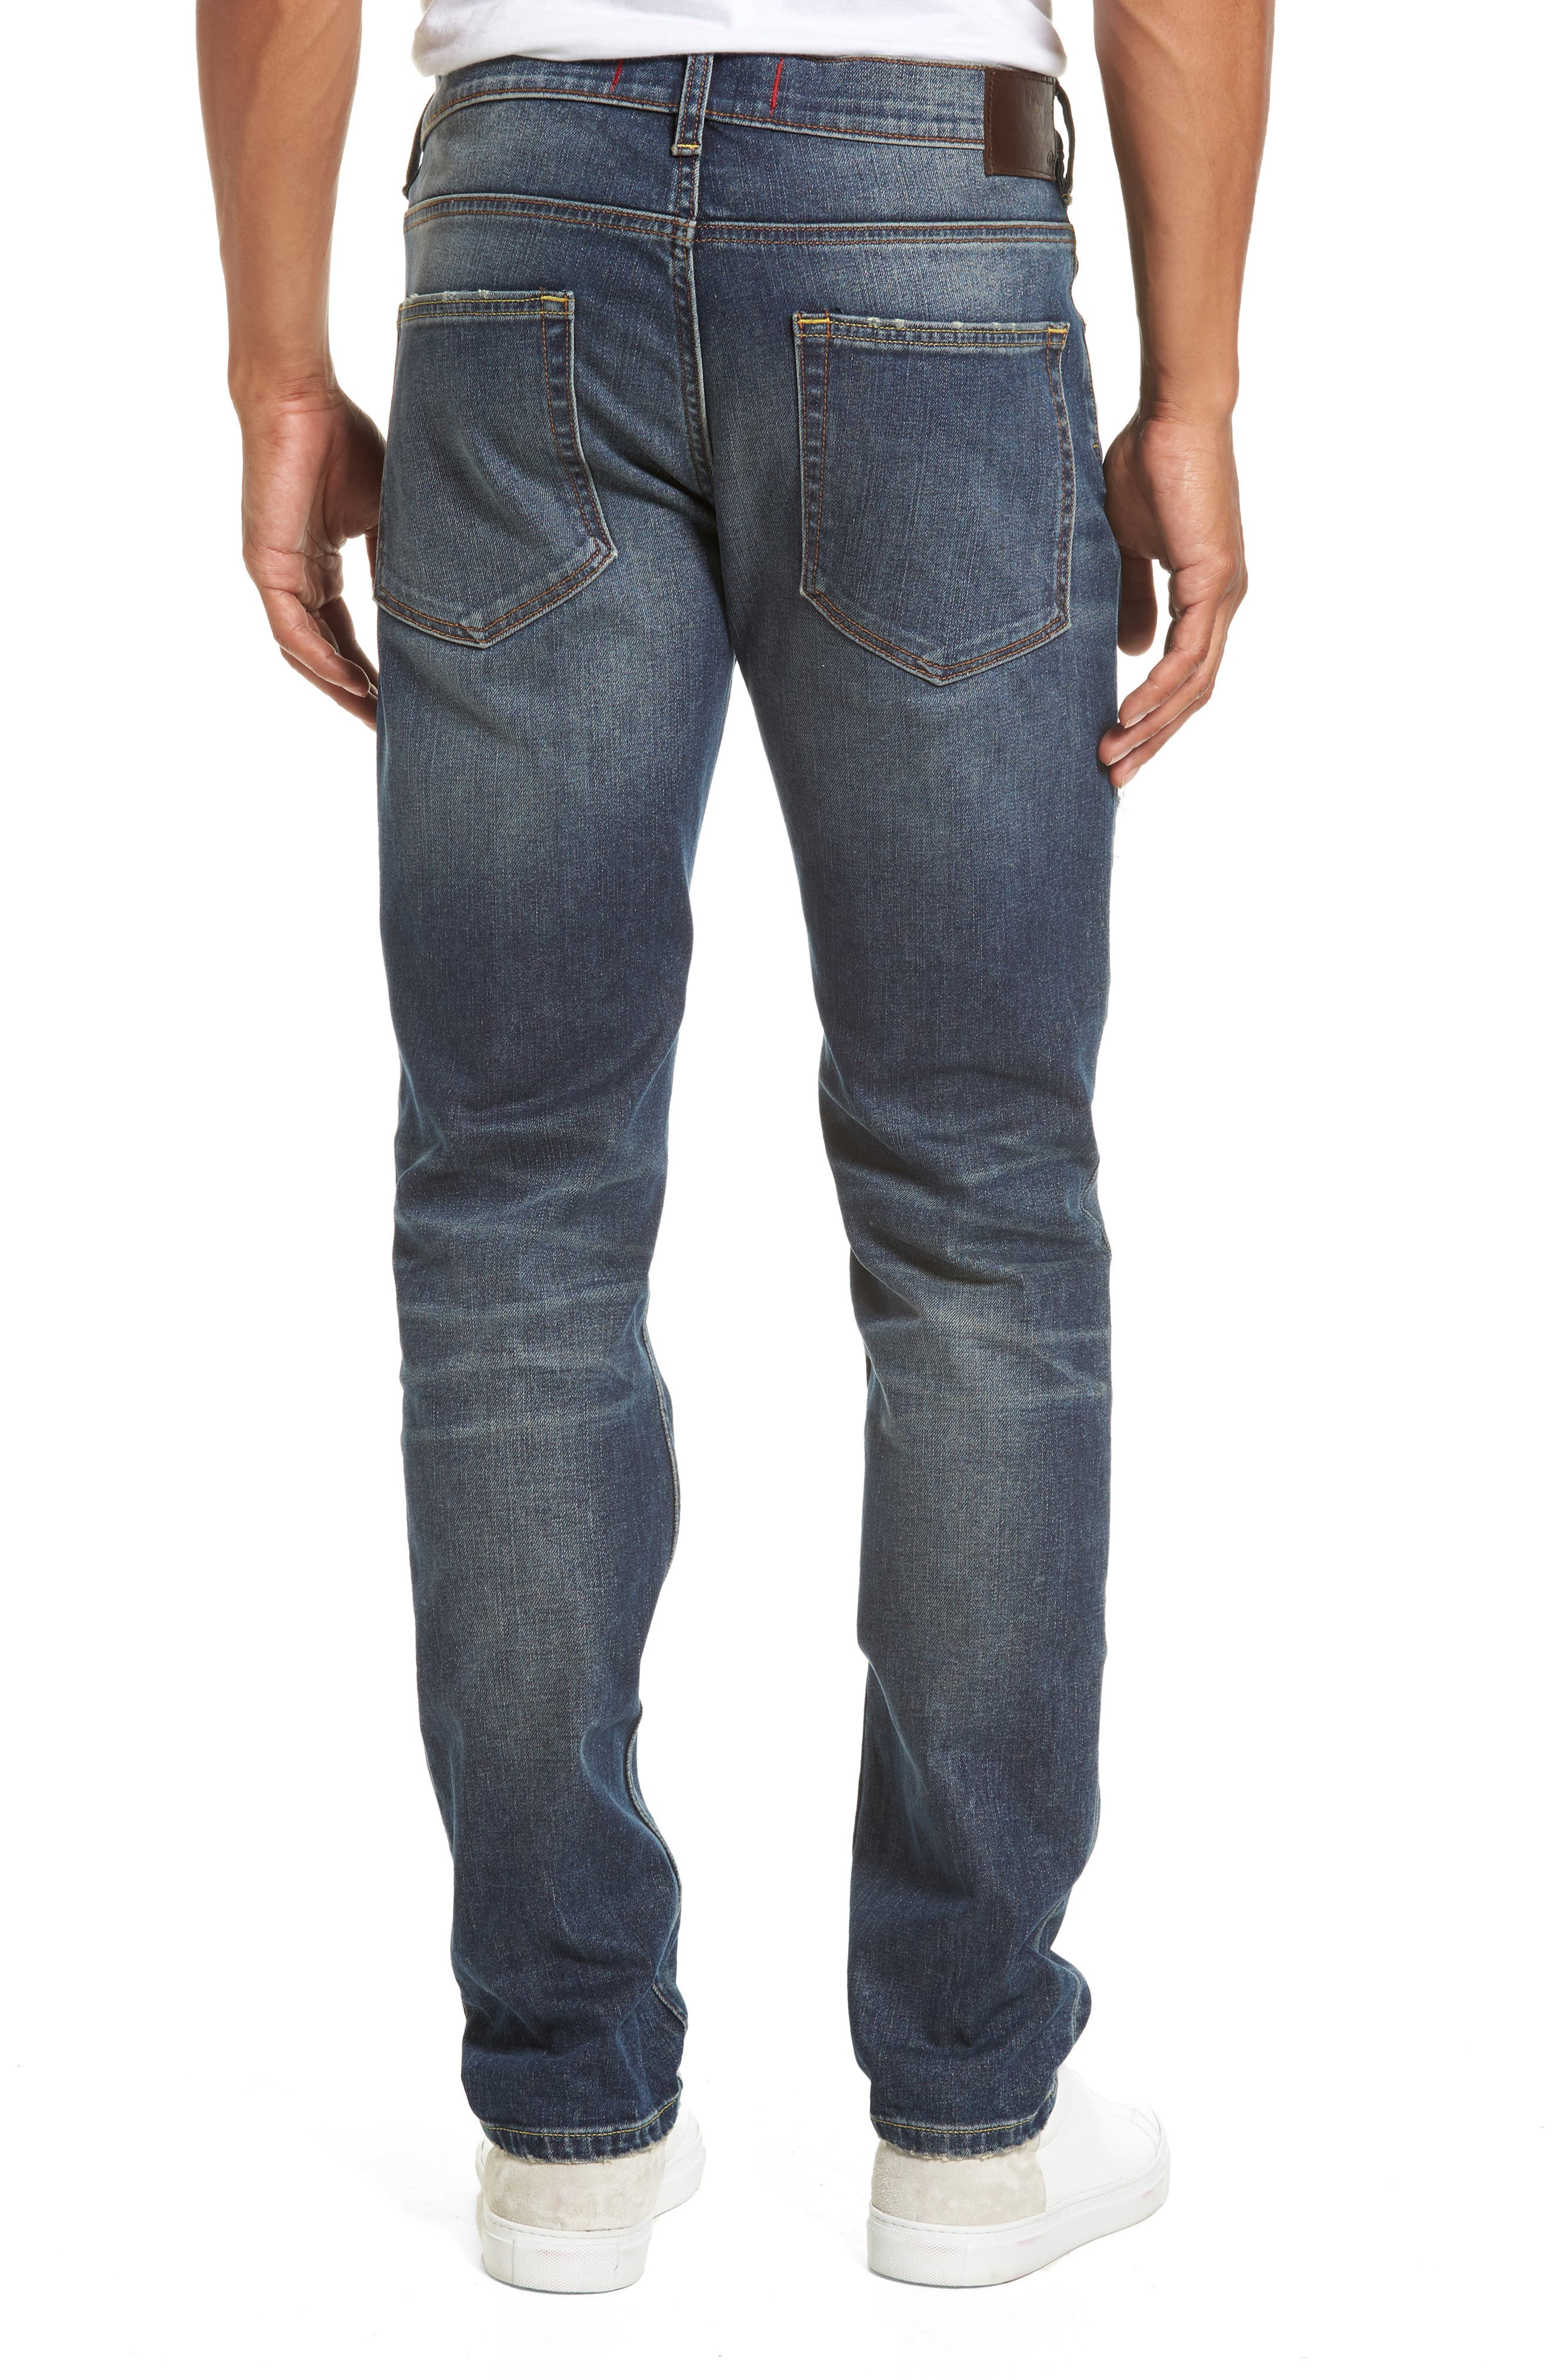 Alternate Image 2  - French Connection Slim Fit Distressed Jeans (Vintage & Holes)